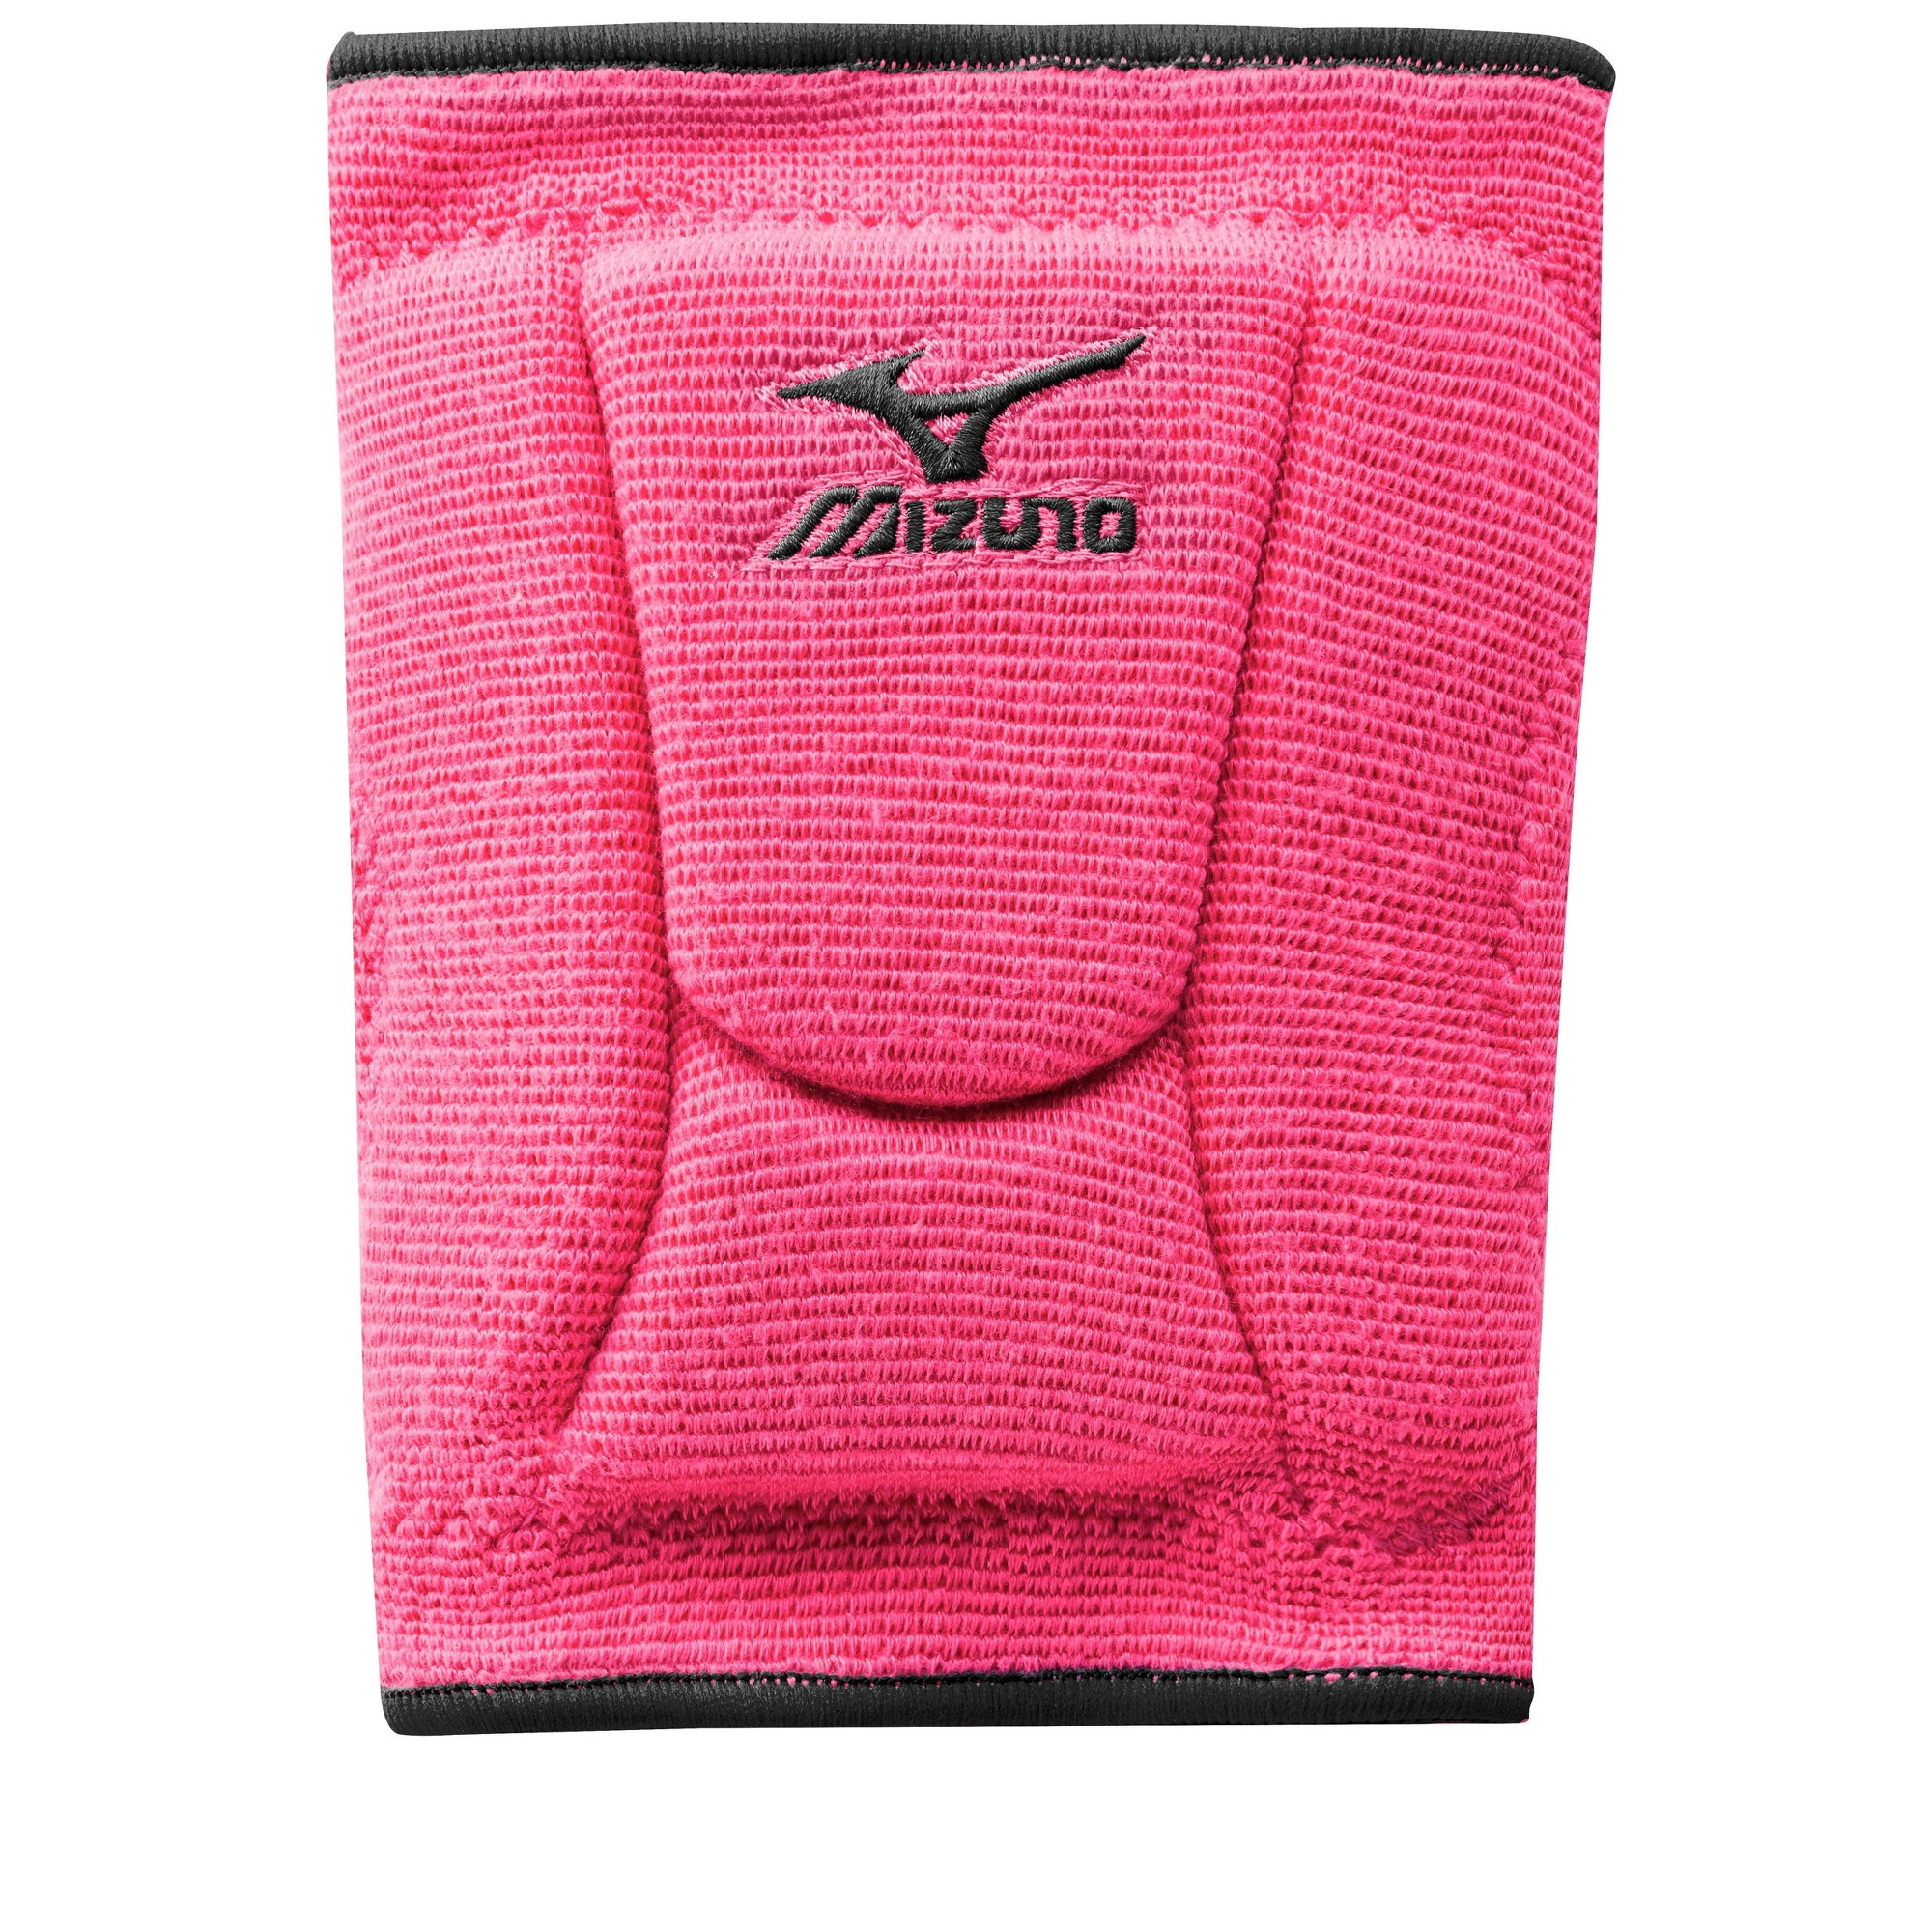 Mizuno Lr6 Highlighter Volleyball Knee Pads Unisex Size Large In Color Shocking Pink Black 1m90 Volleyball Knee Pads Volleyball Unisex